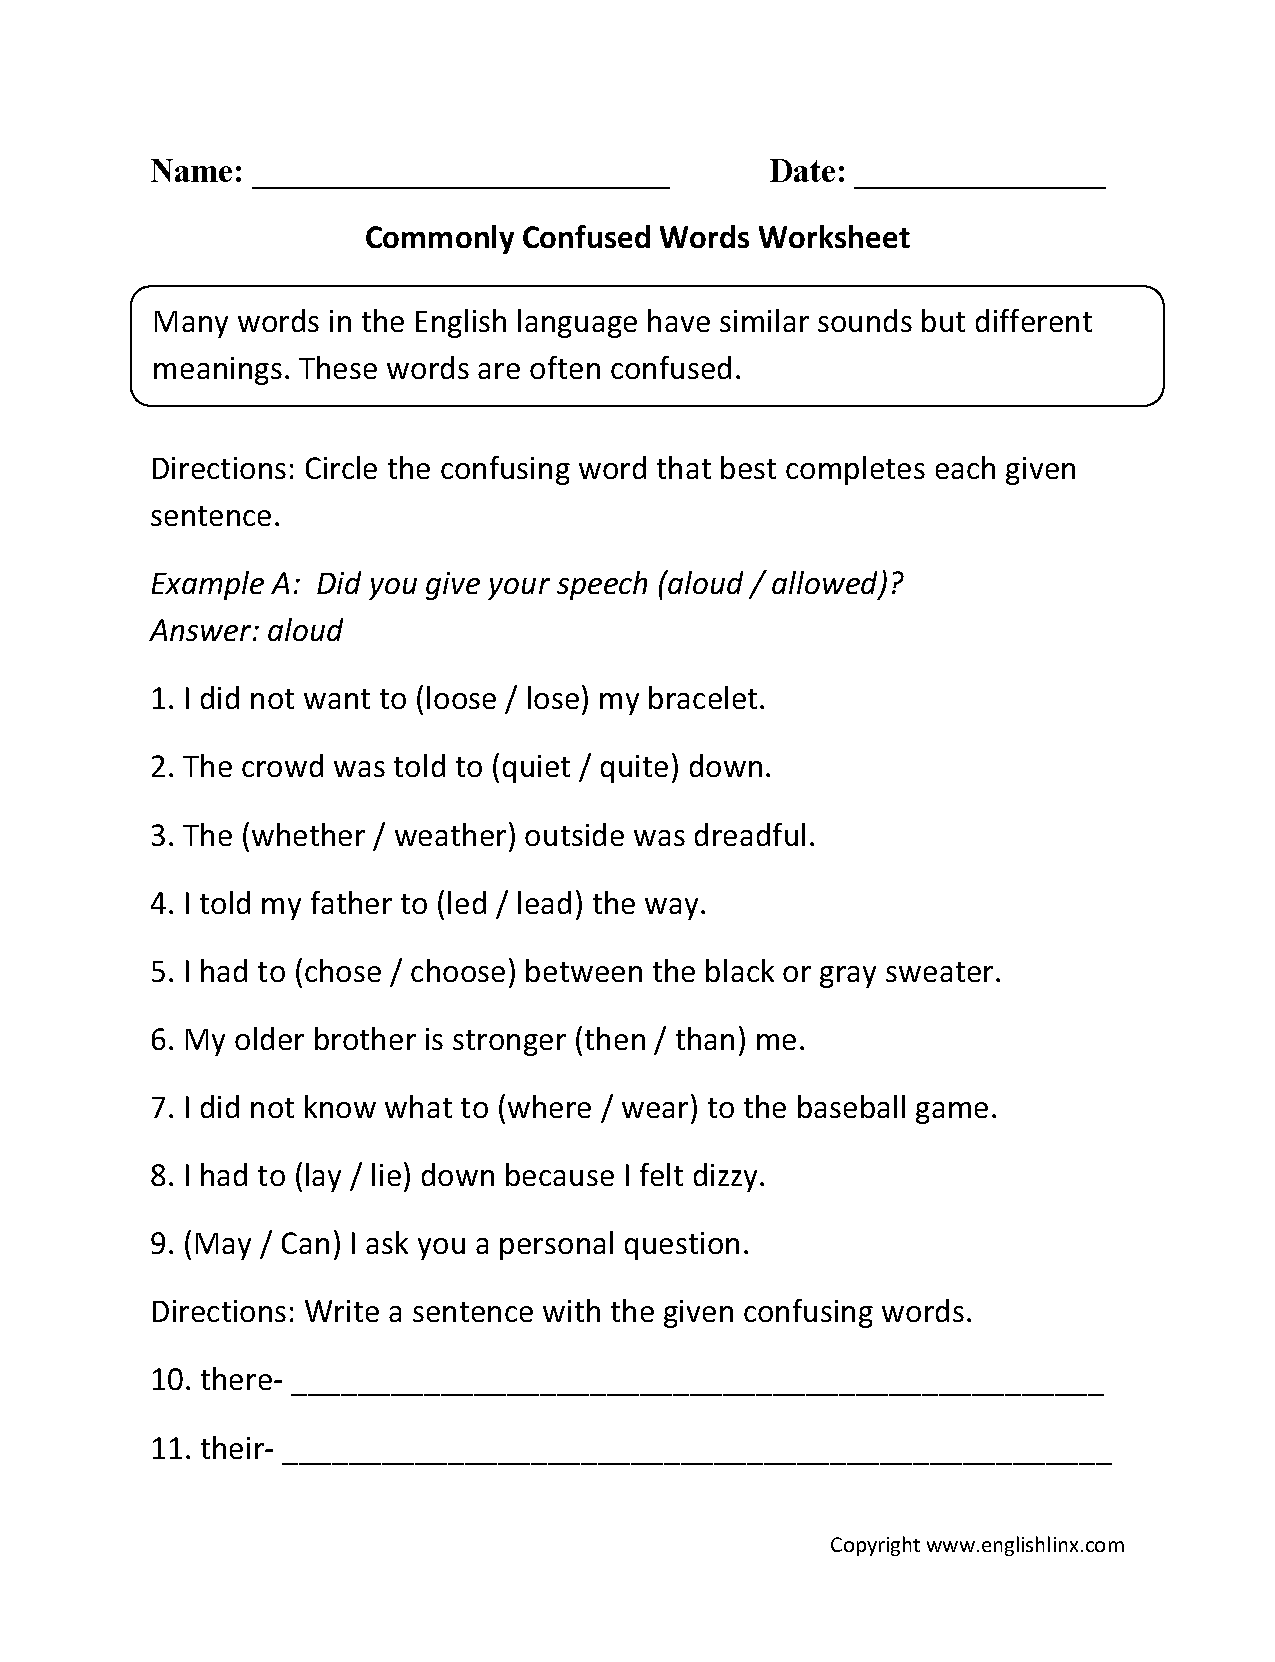 Free Worksheet Commonly Confused Words Worksheet word usage worksheets commonly confused words worksheet